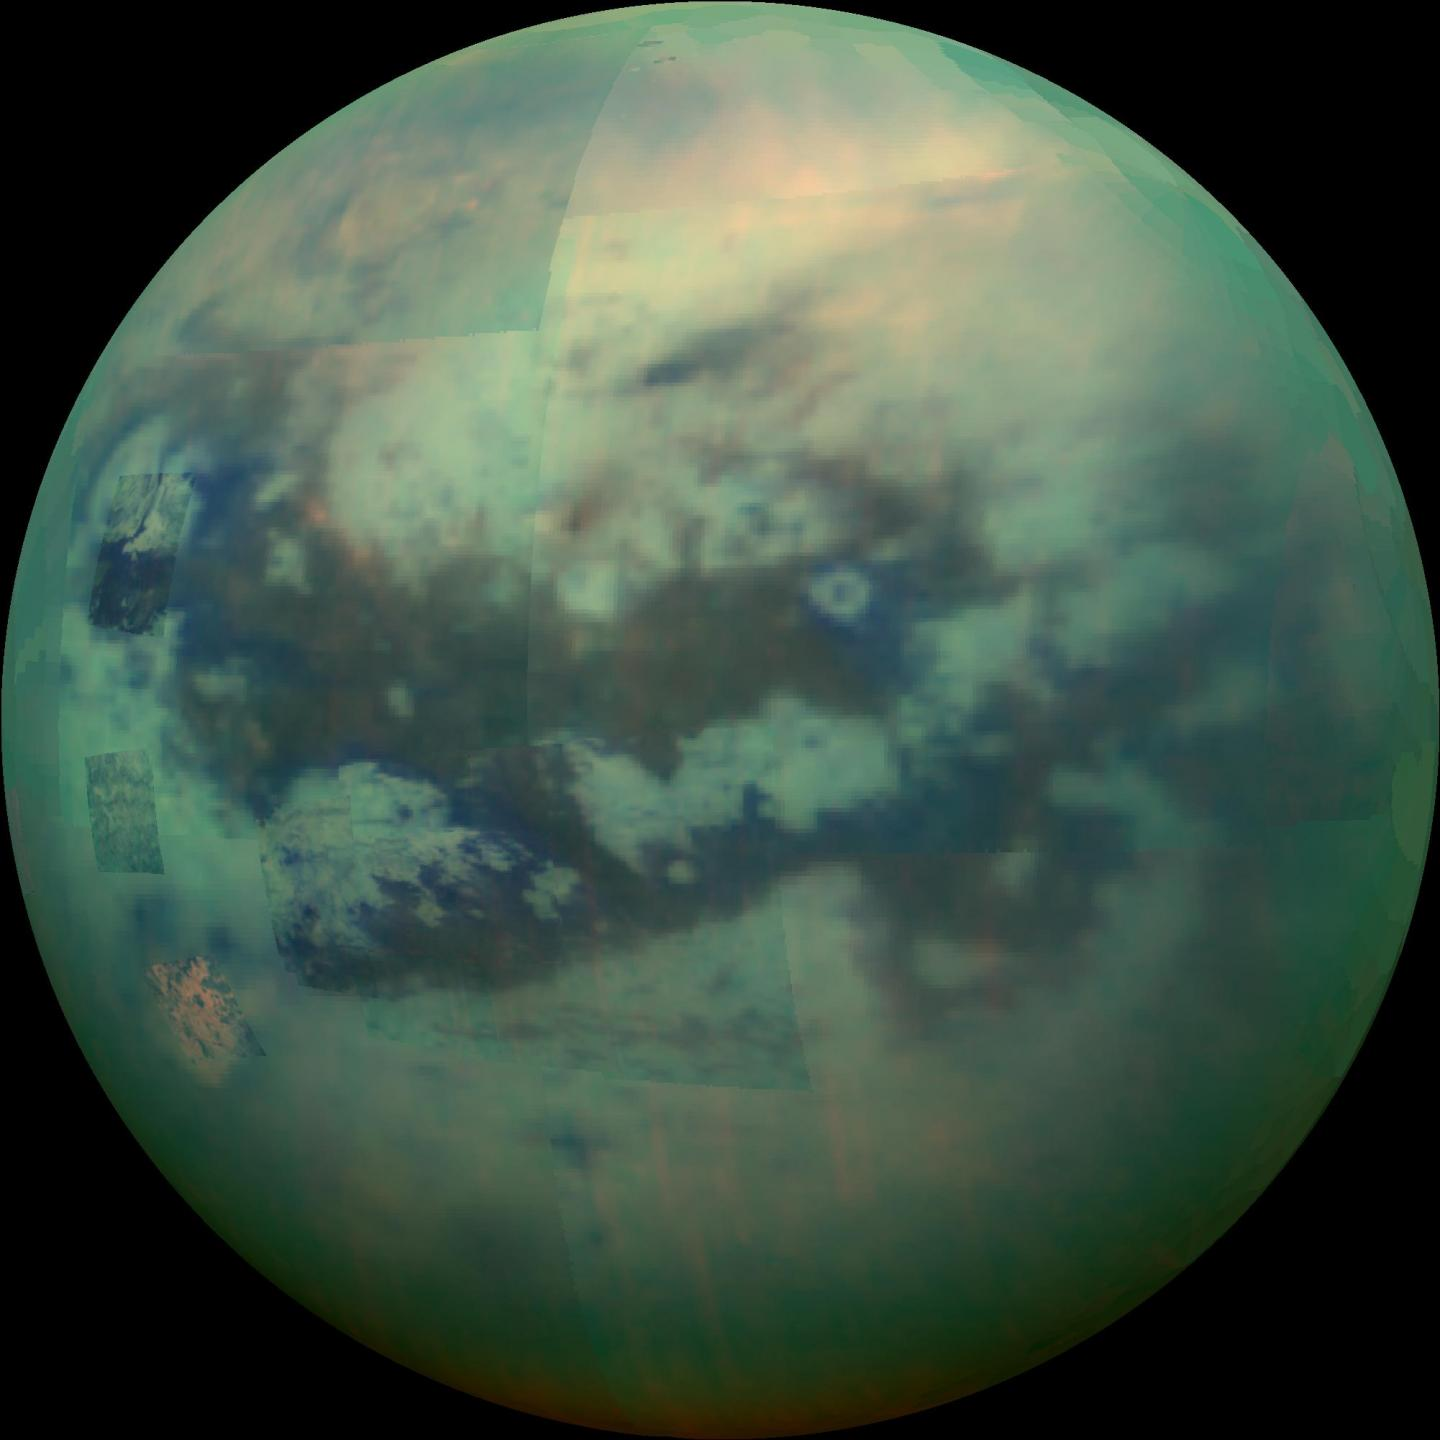 Composite Image Showing An Infrared View of Saturn's Moon Titan